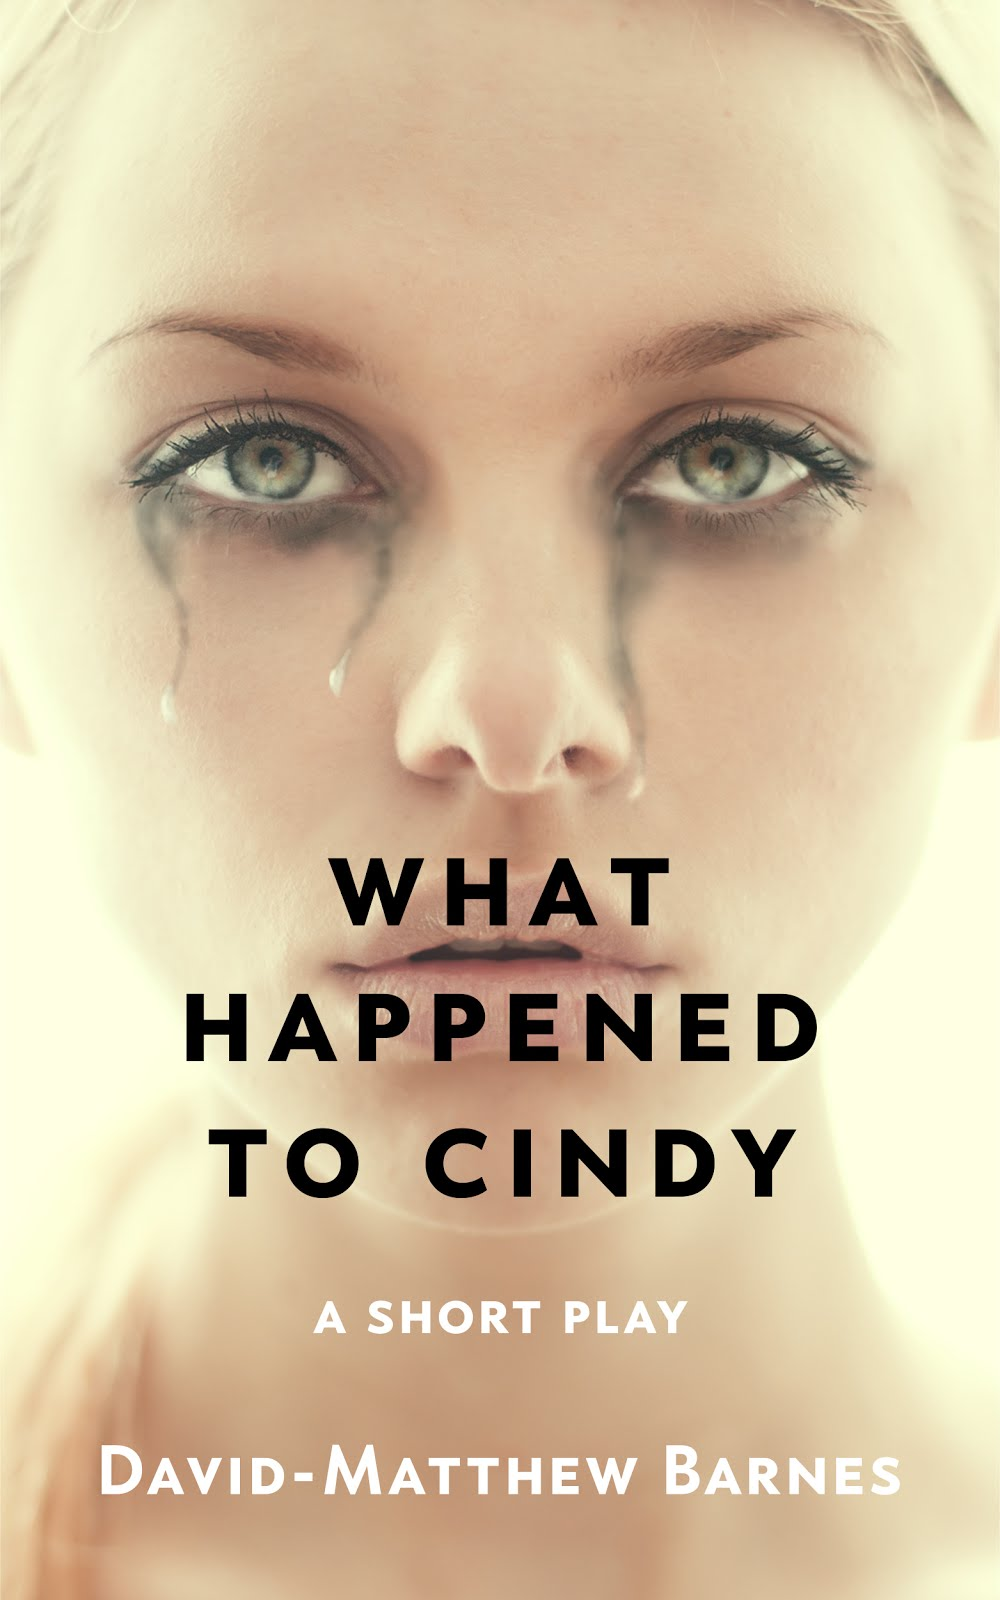 What Happened to Cindy